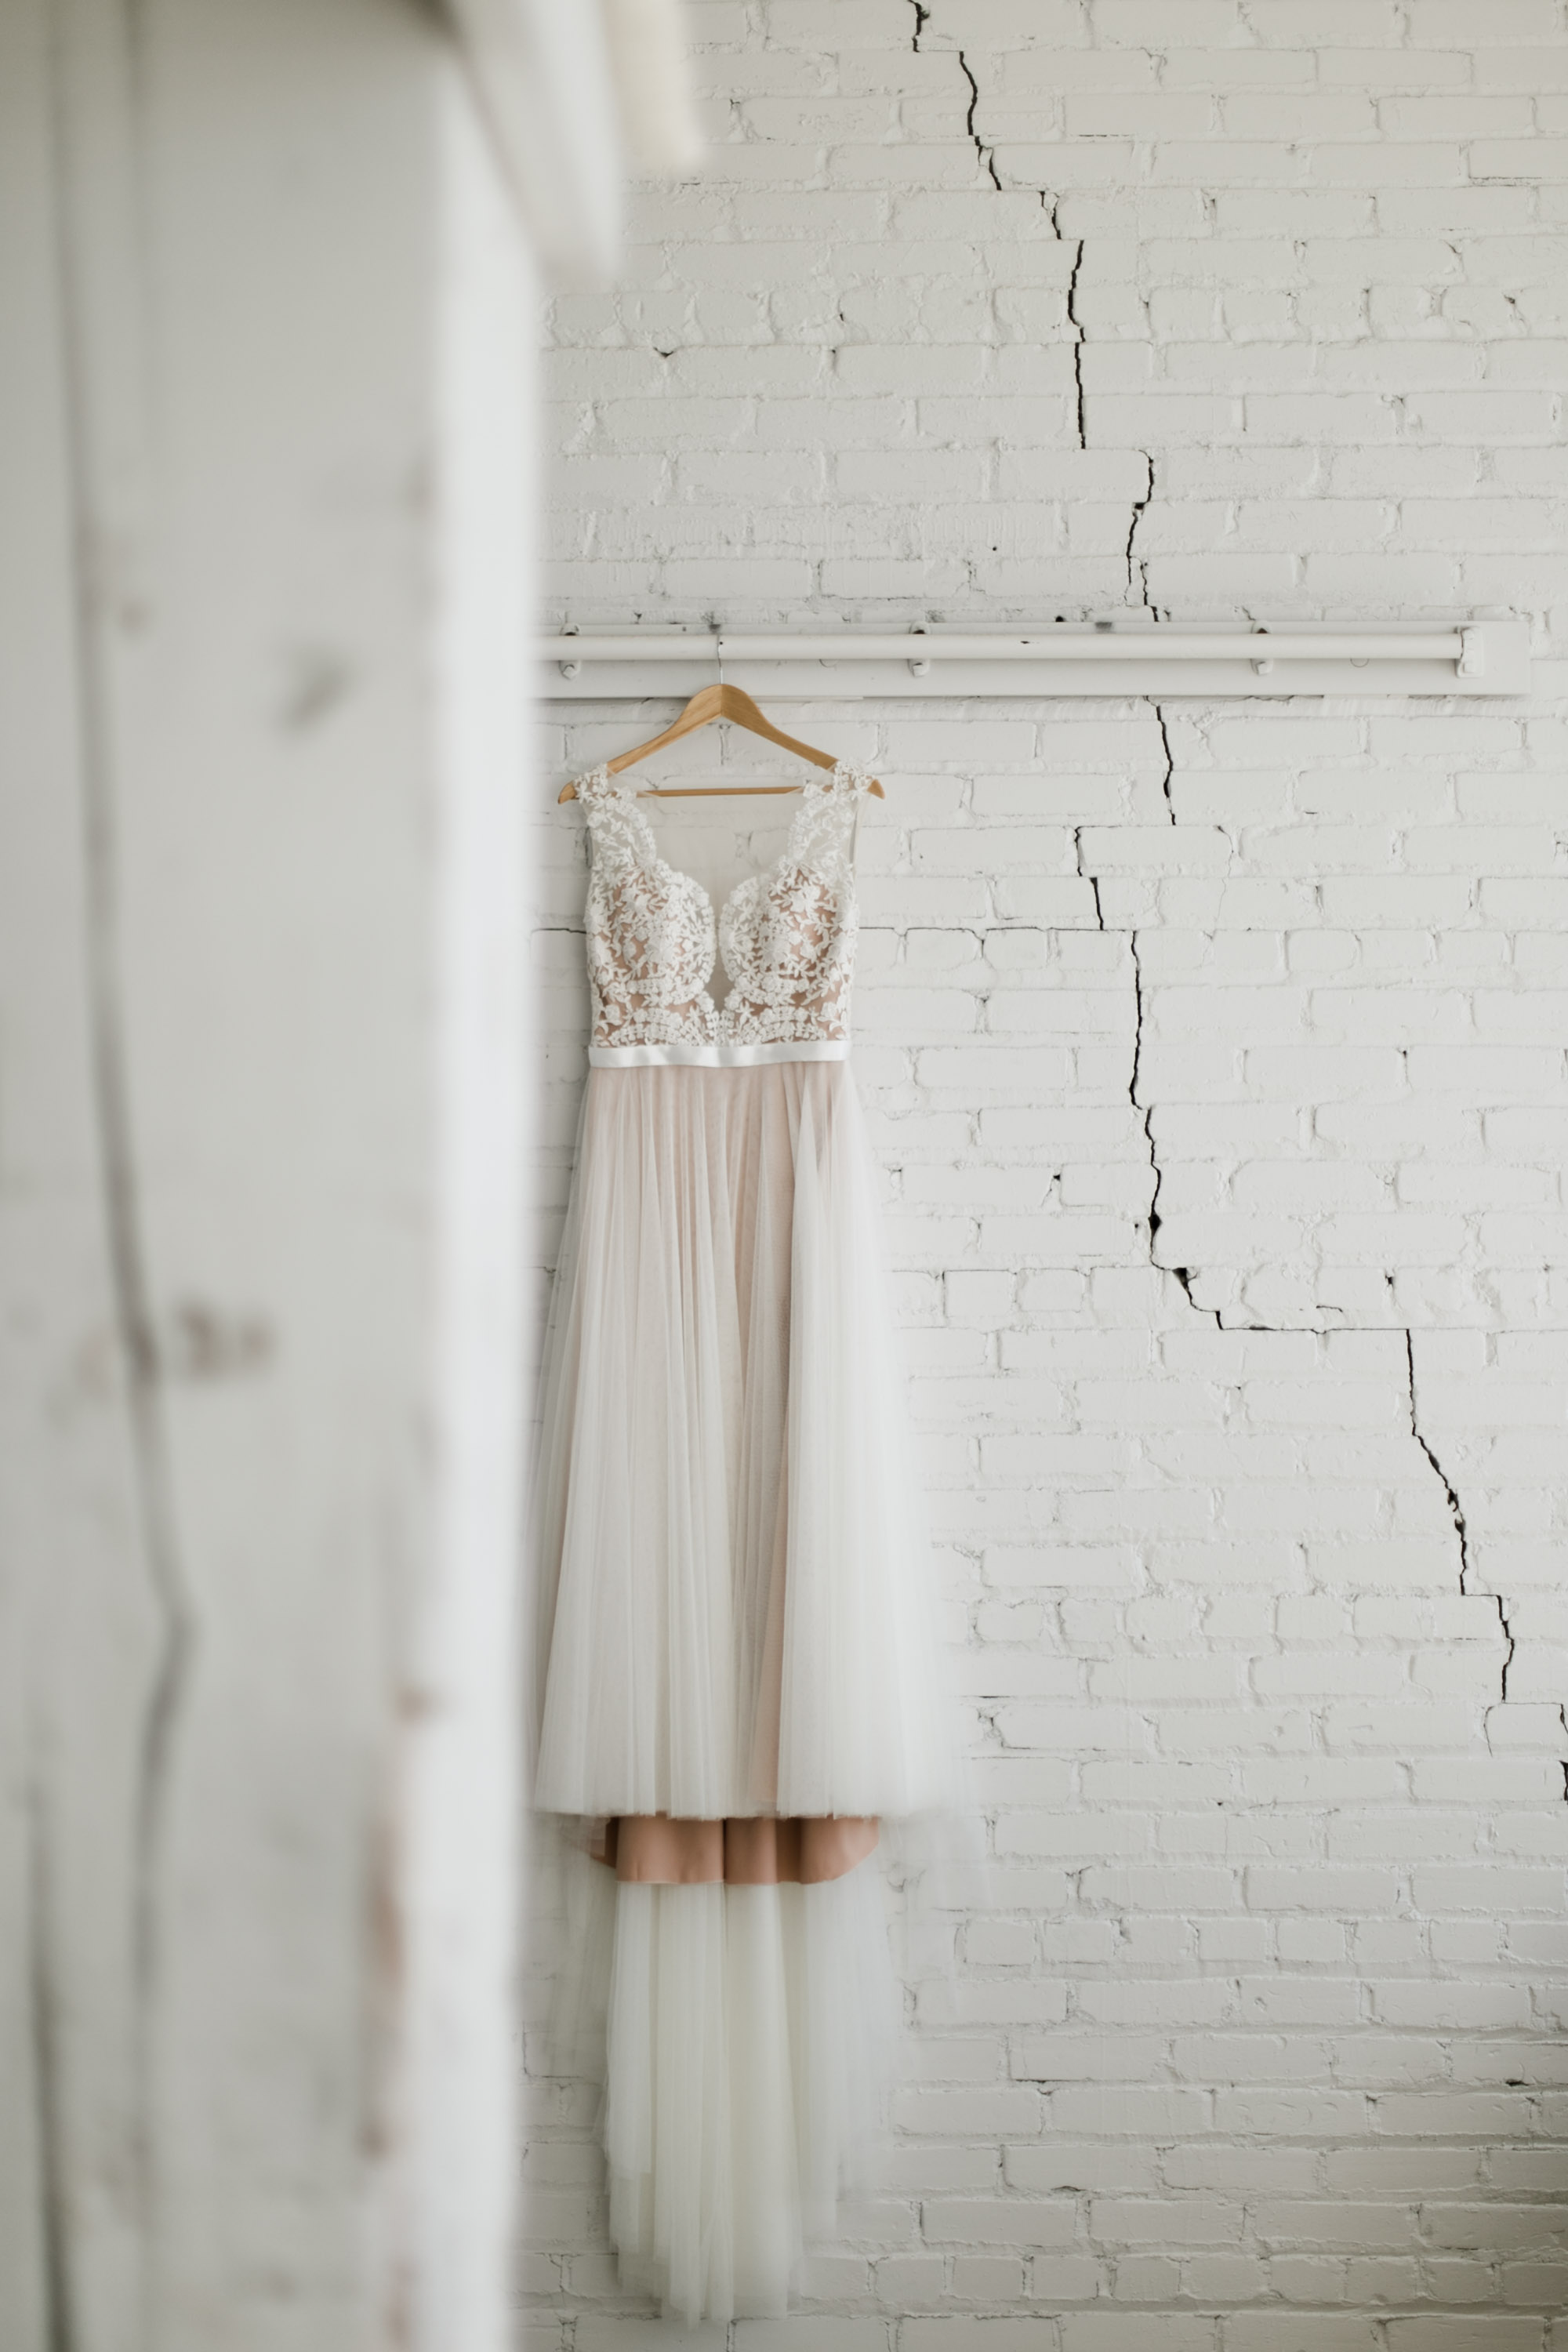 Boho chic wedding dressing hanging in the white bridal suite at the NP event space. Photography by Britt DeZeeuw.